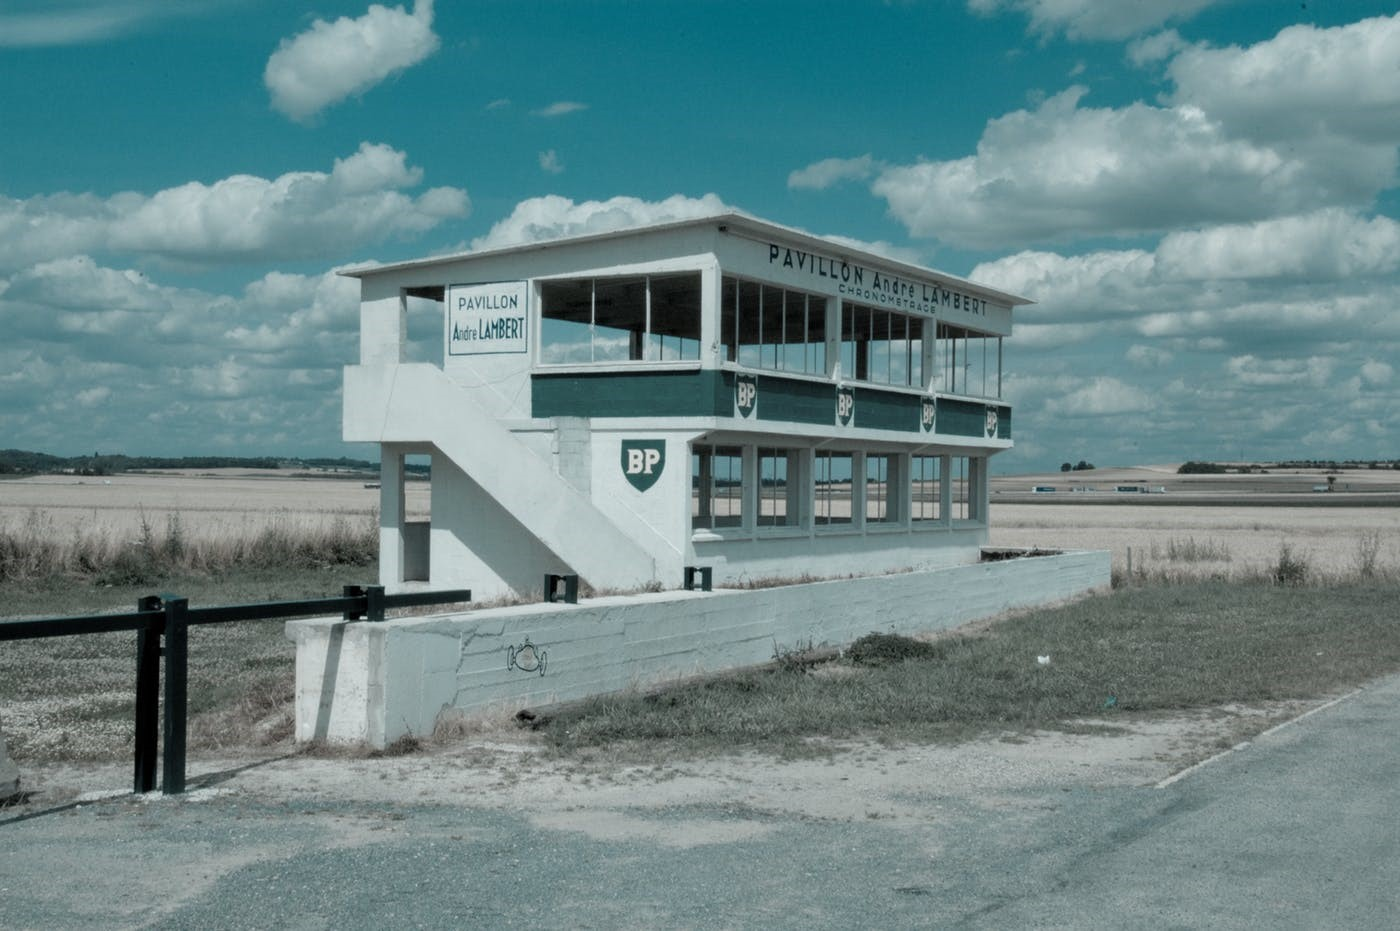 Timekeepers' building at the former Reims-Gueux circuit pictured in 2016